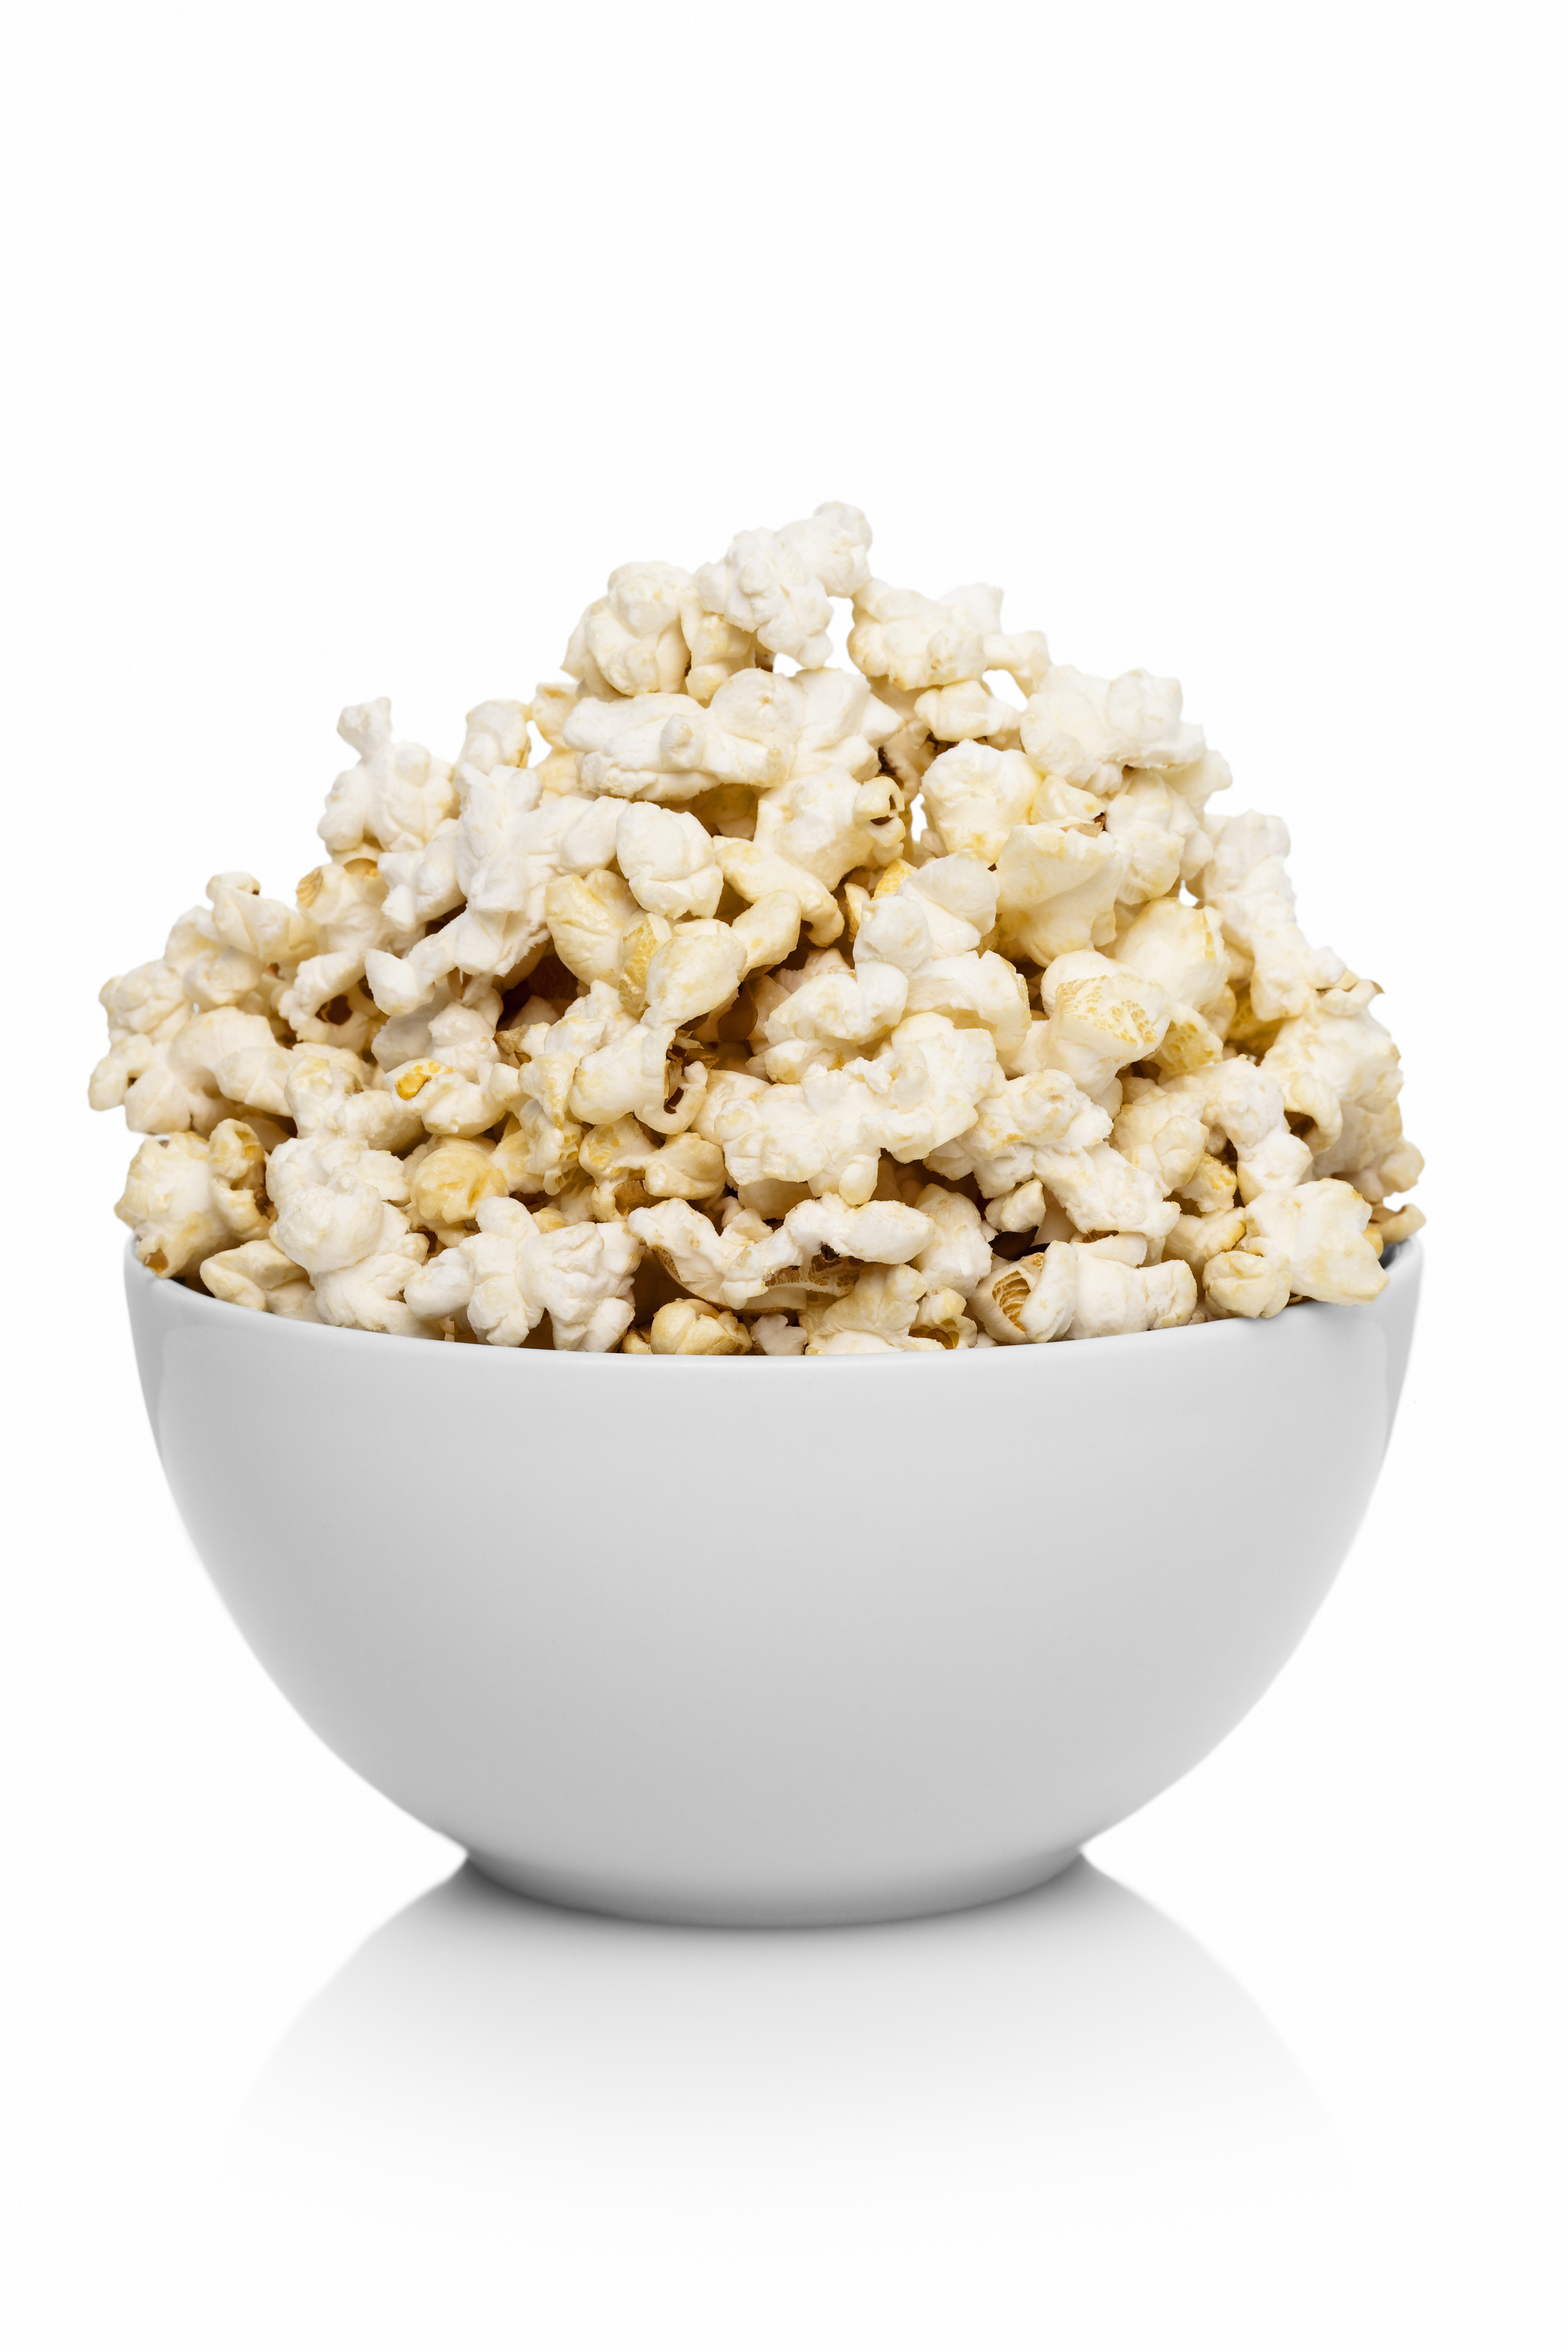 1. Popcorn bowls (via Getty Images)